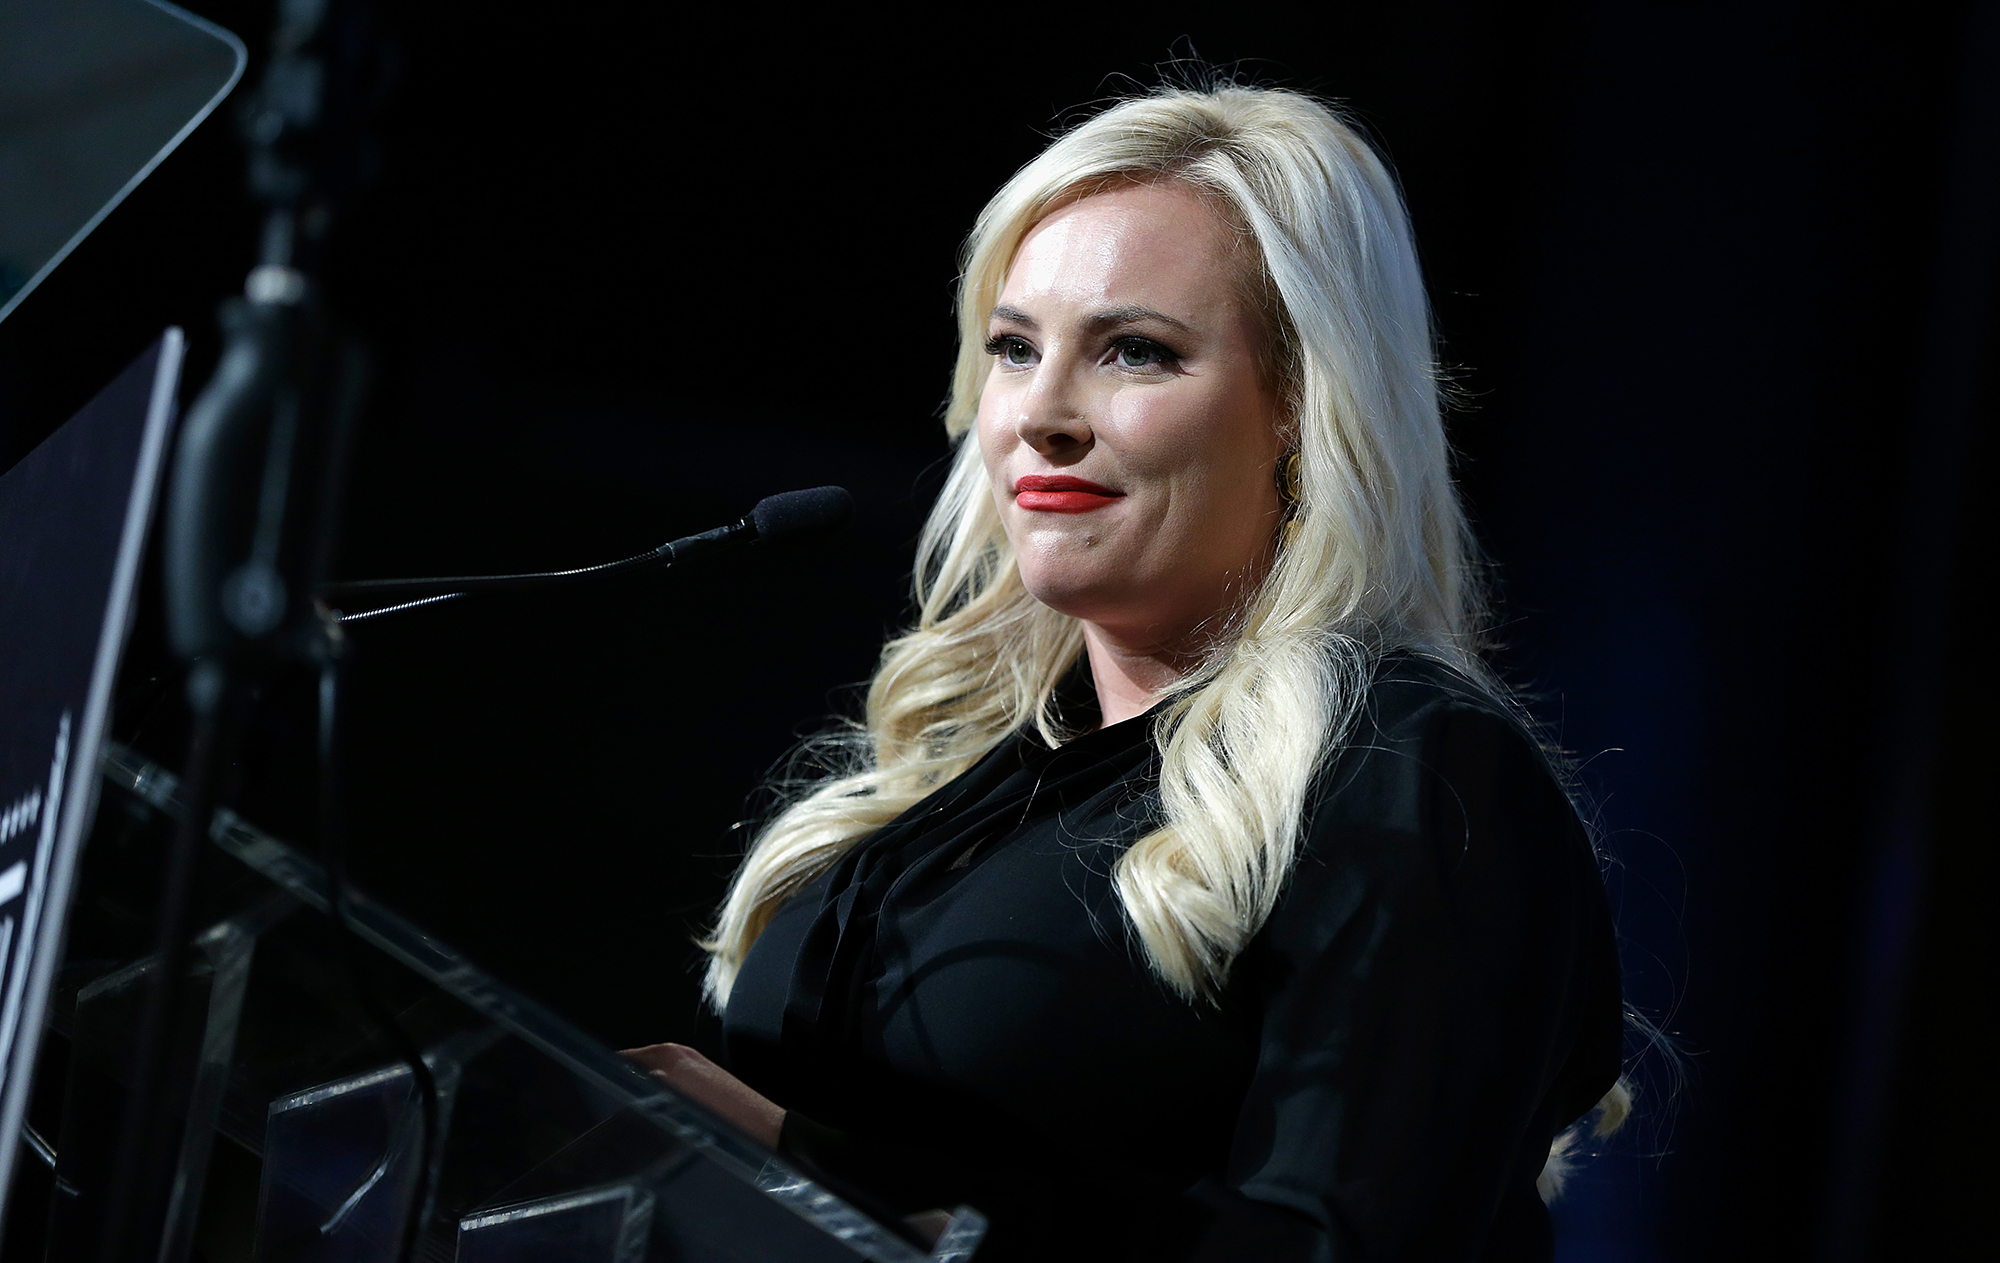 Meghan McCain Is Returning to 'The View' After the Death of Her Father John McCain - Meghan McCain